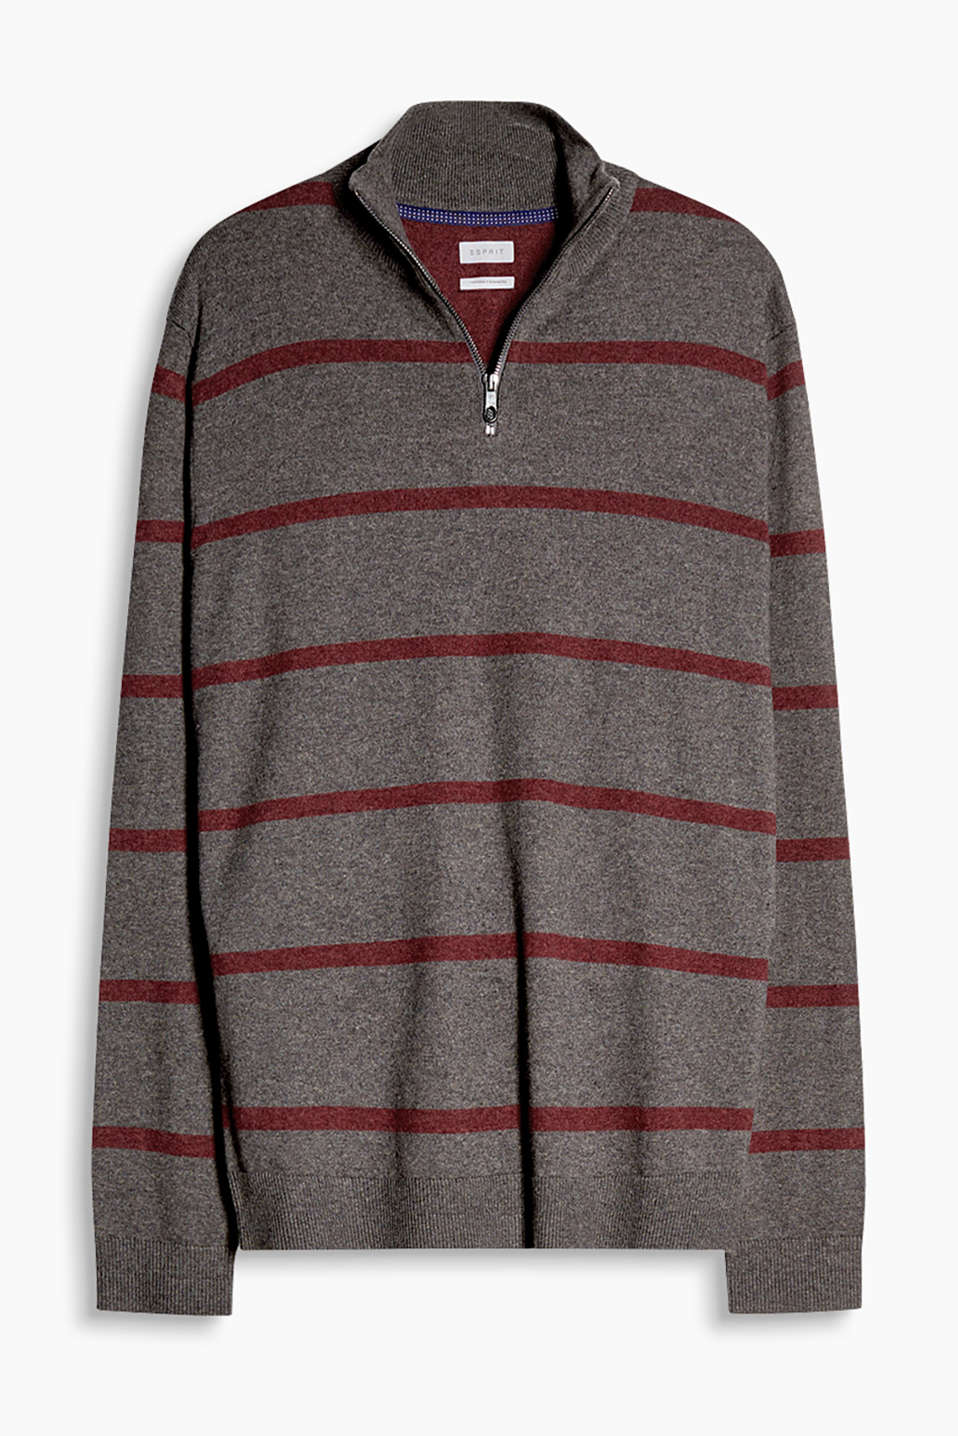 The stand-up collar with a zip on this jumper makes it a head-turning piece in a warm blend of cotton and cashmere